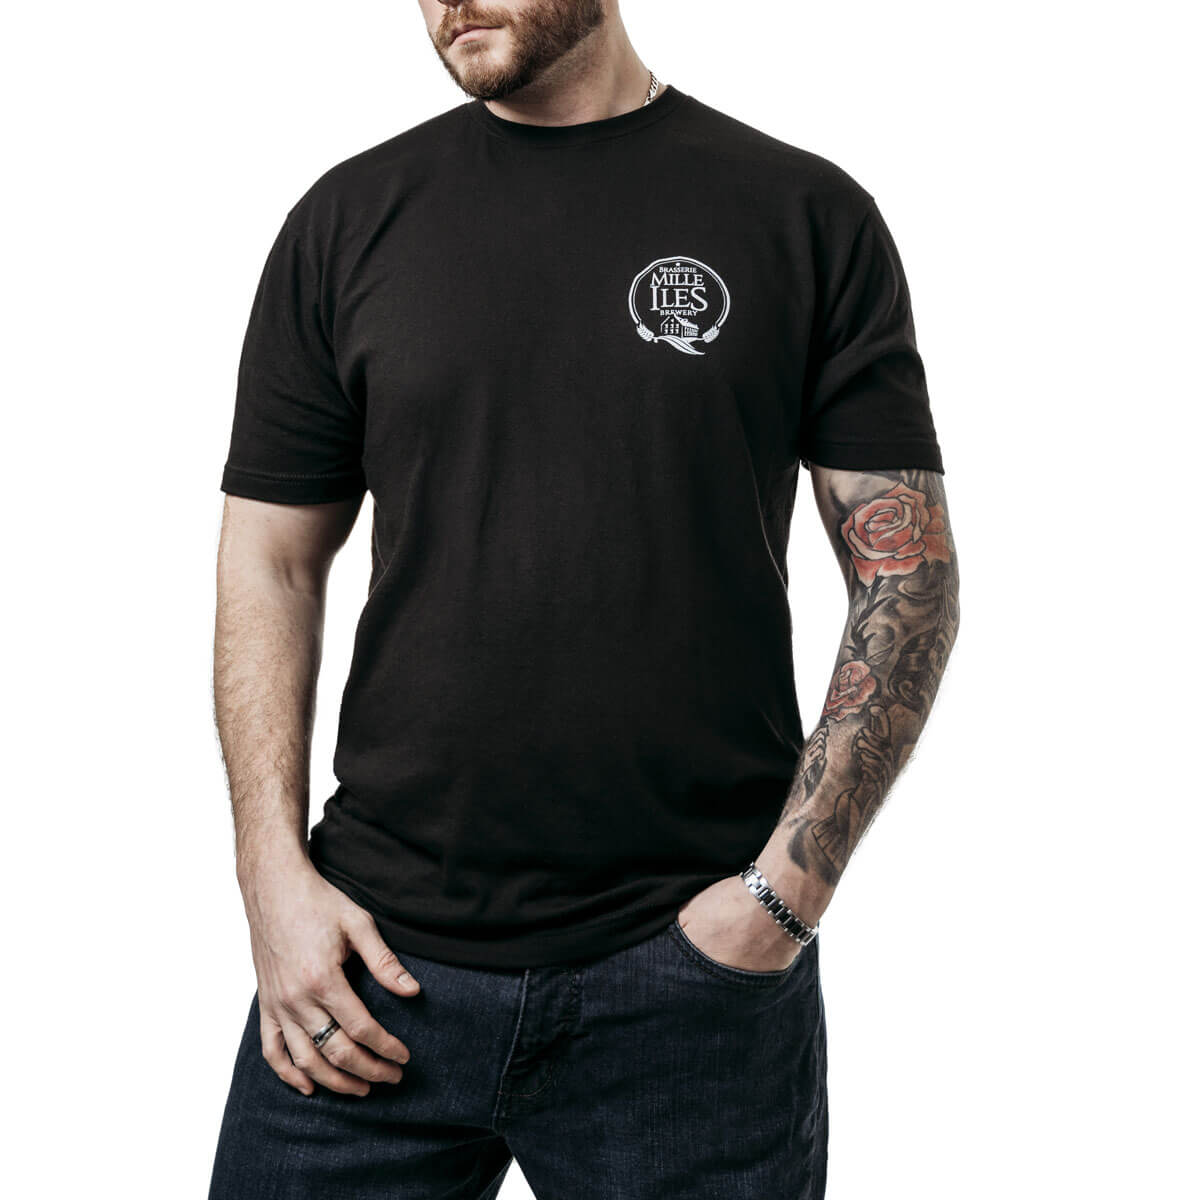 Mille-iles Brewery  Men's T-shirt